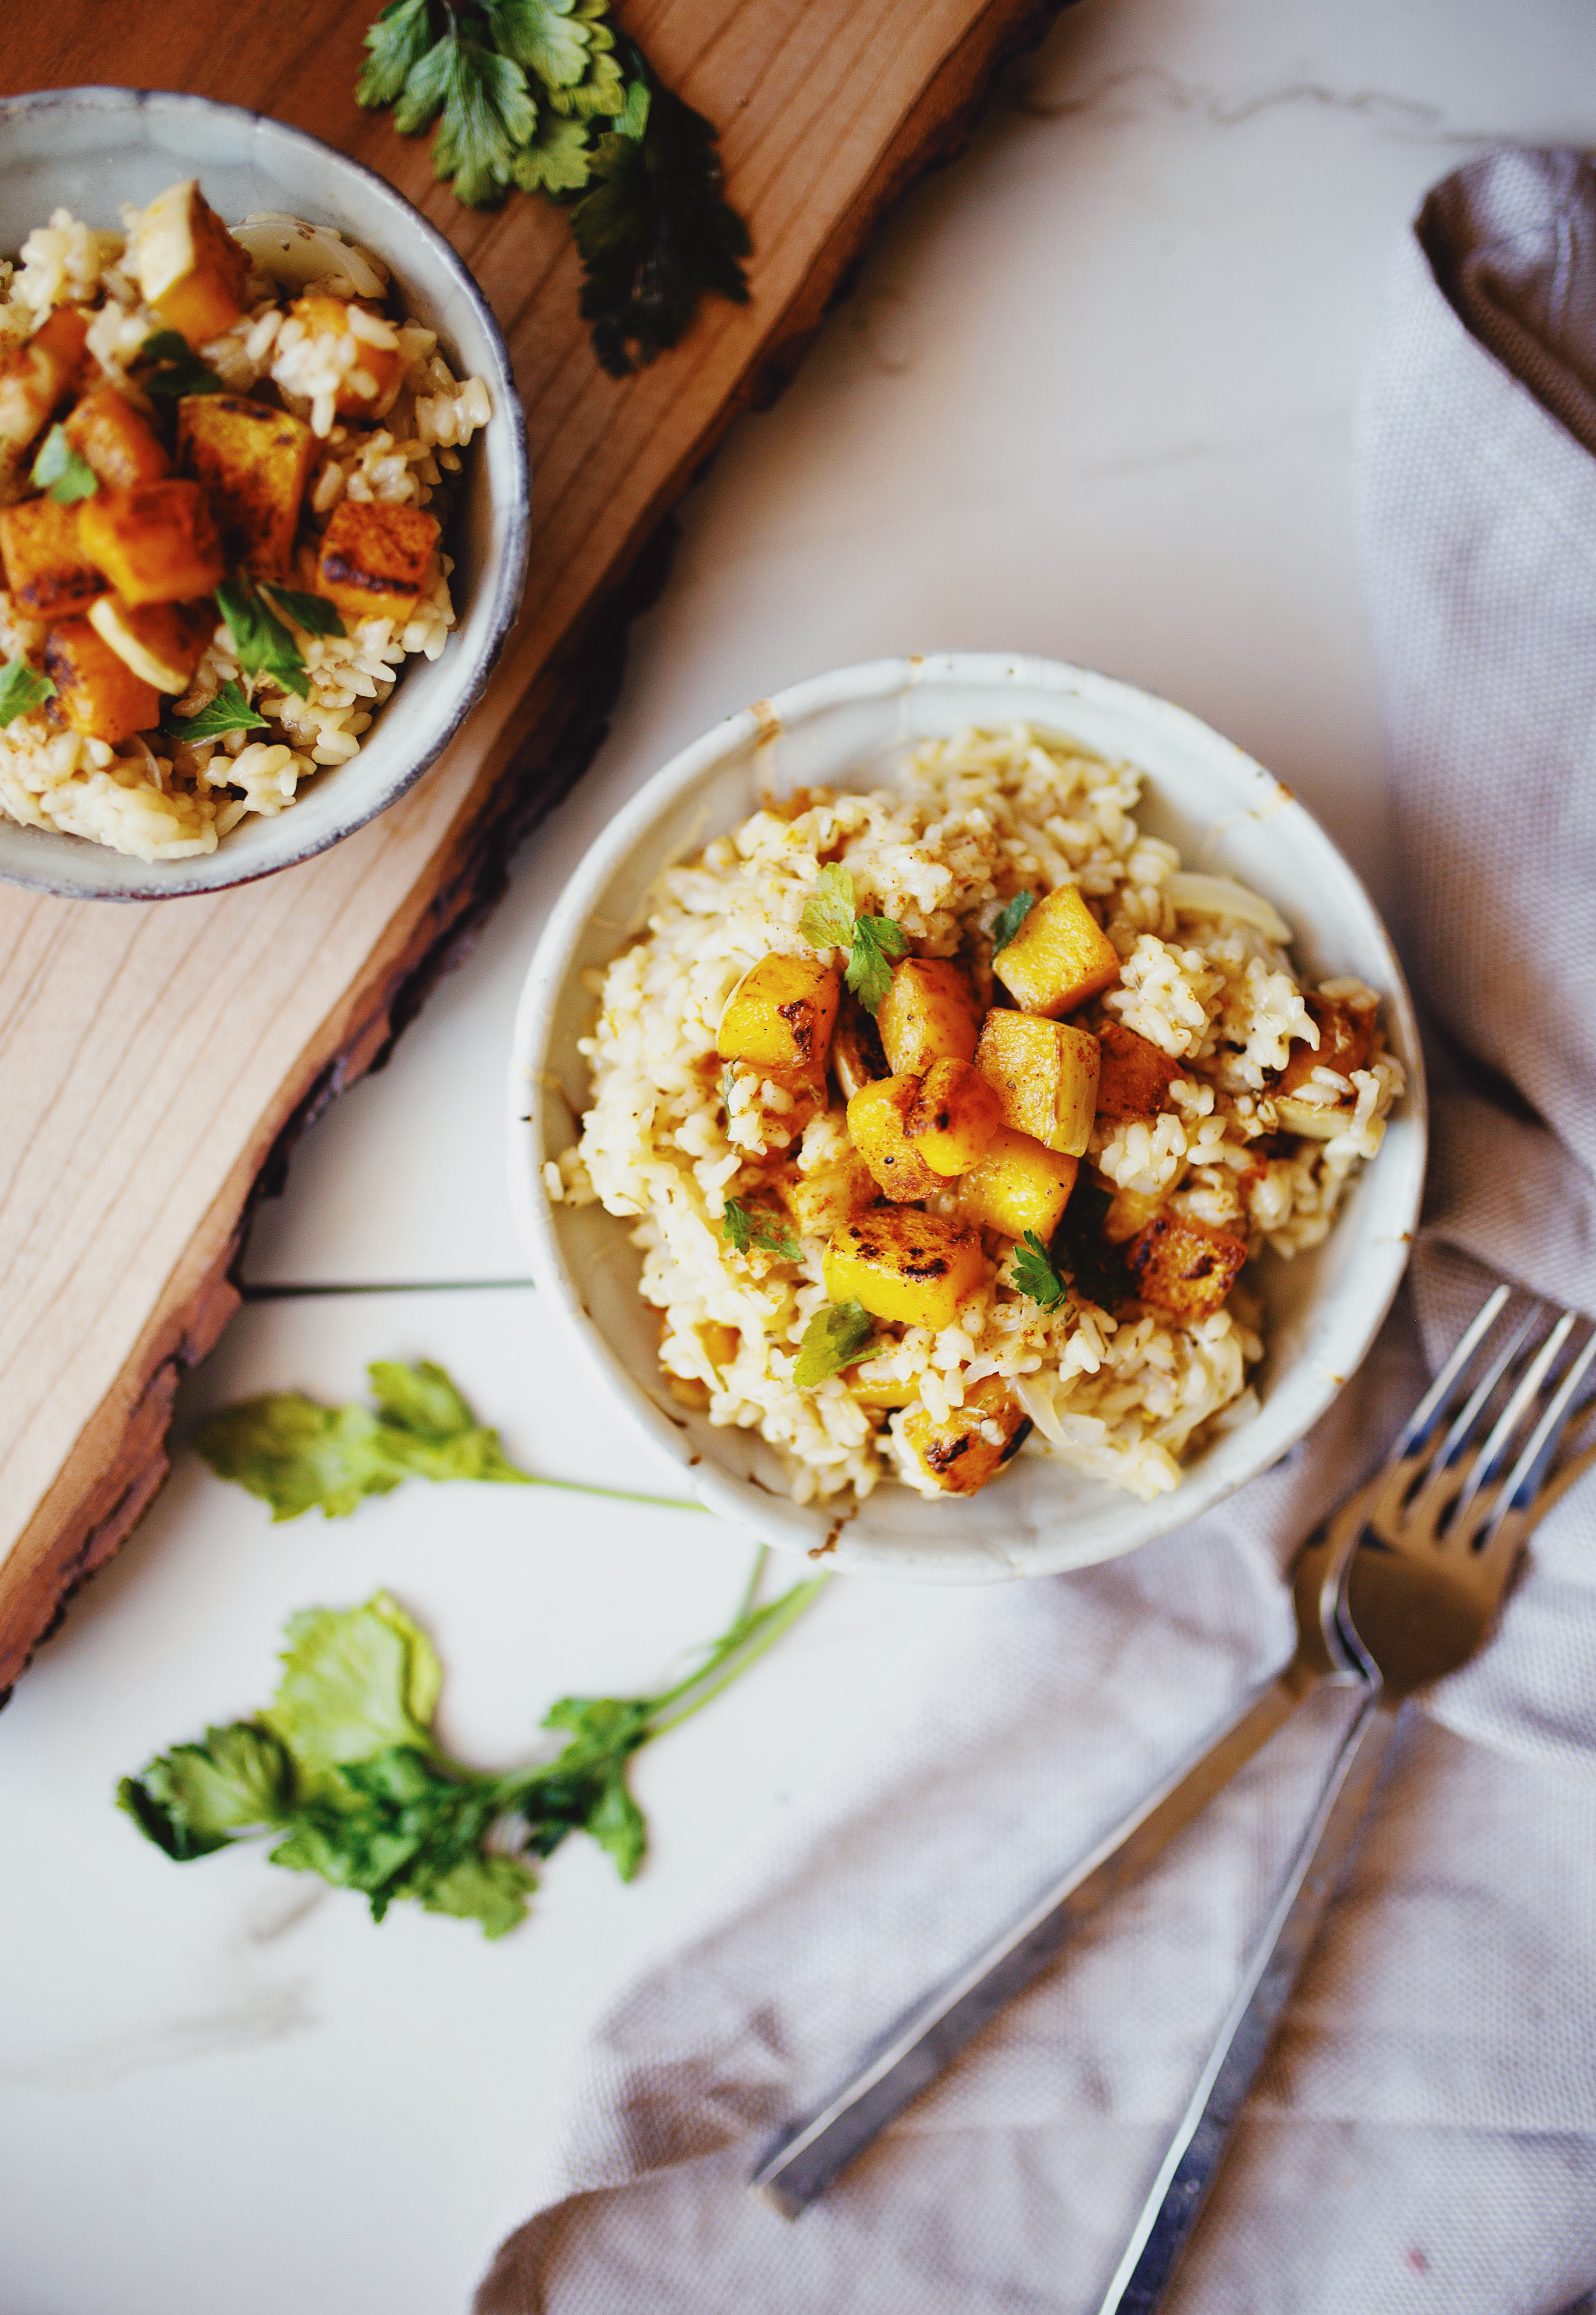 Simple vegan risotto recipe